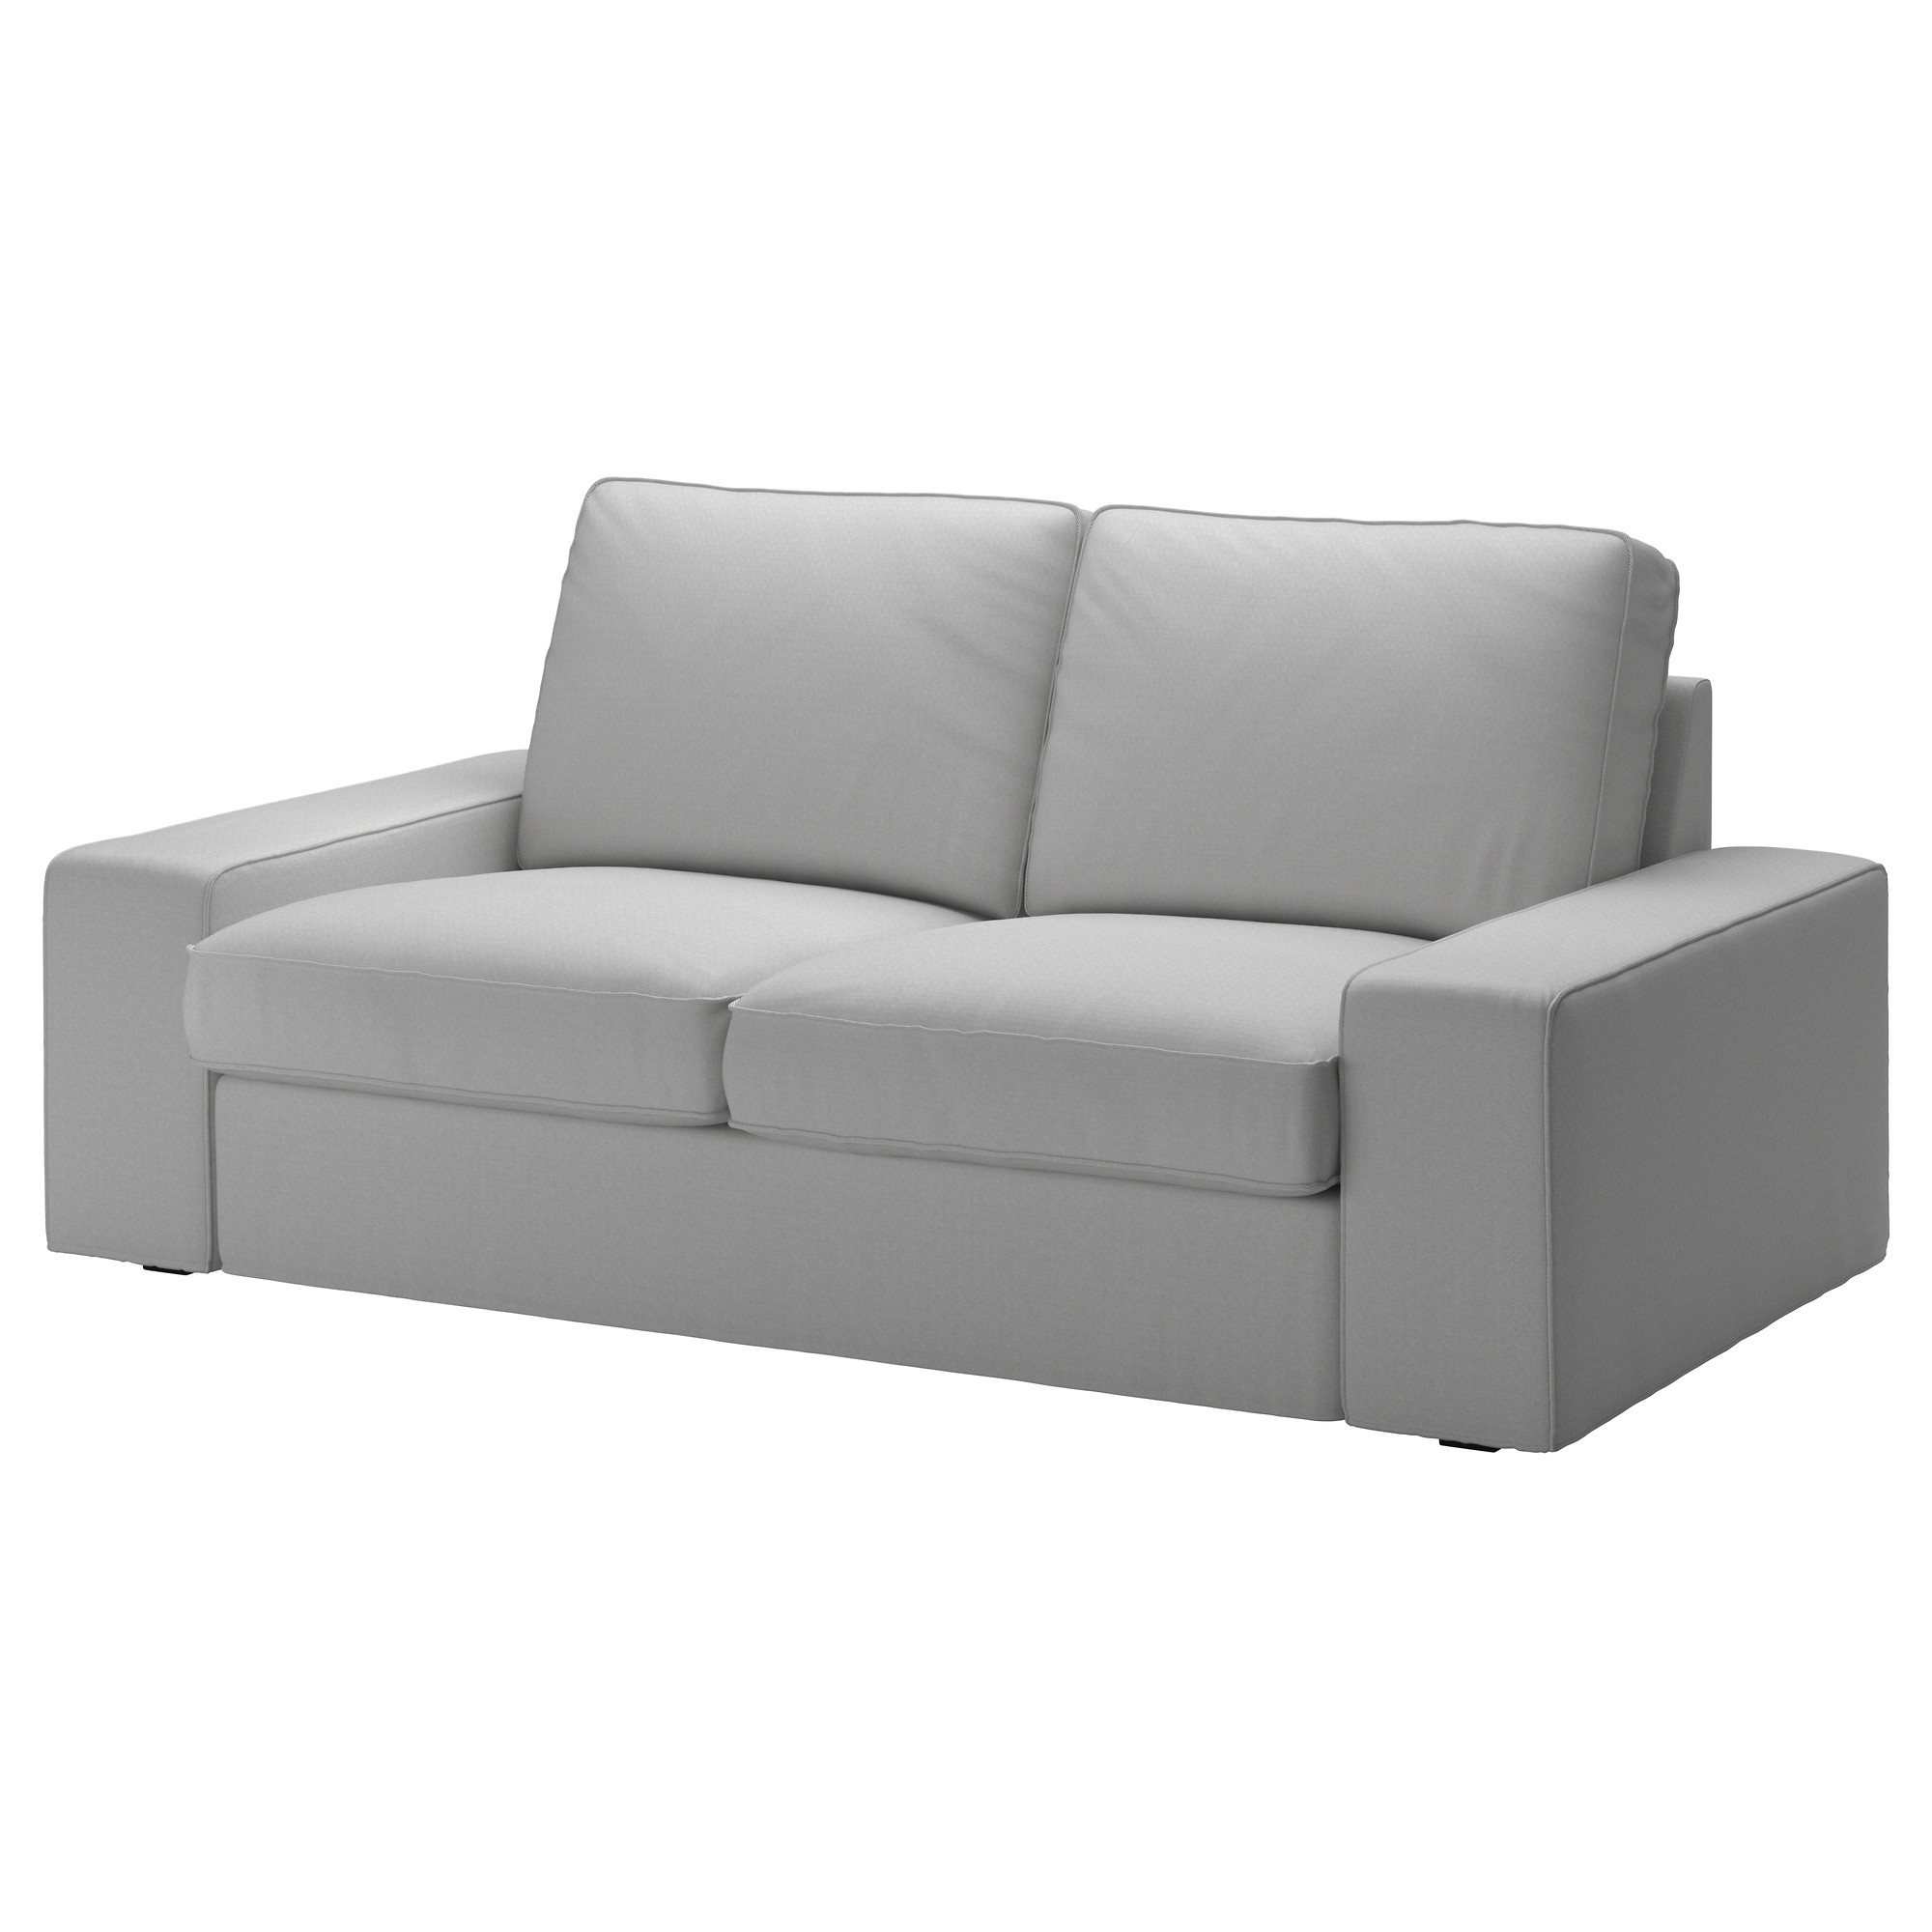 KIVIK Loveseat cover Orrsta light gray IKEA